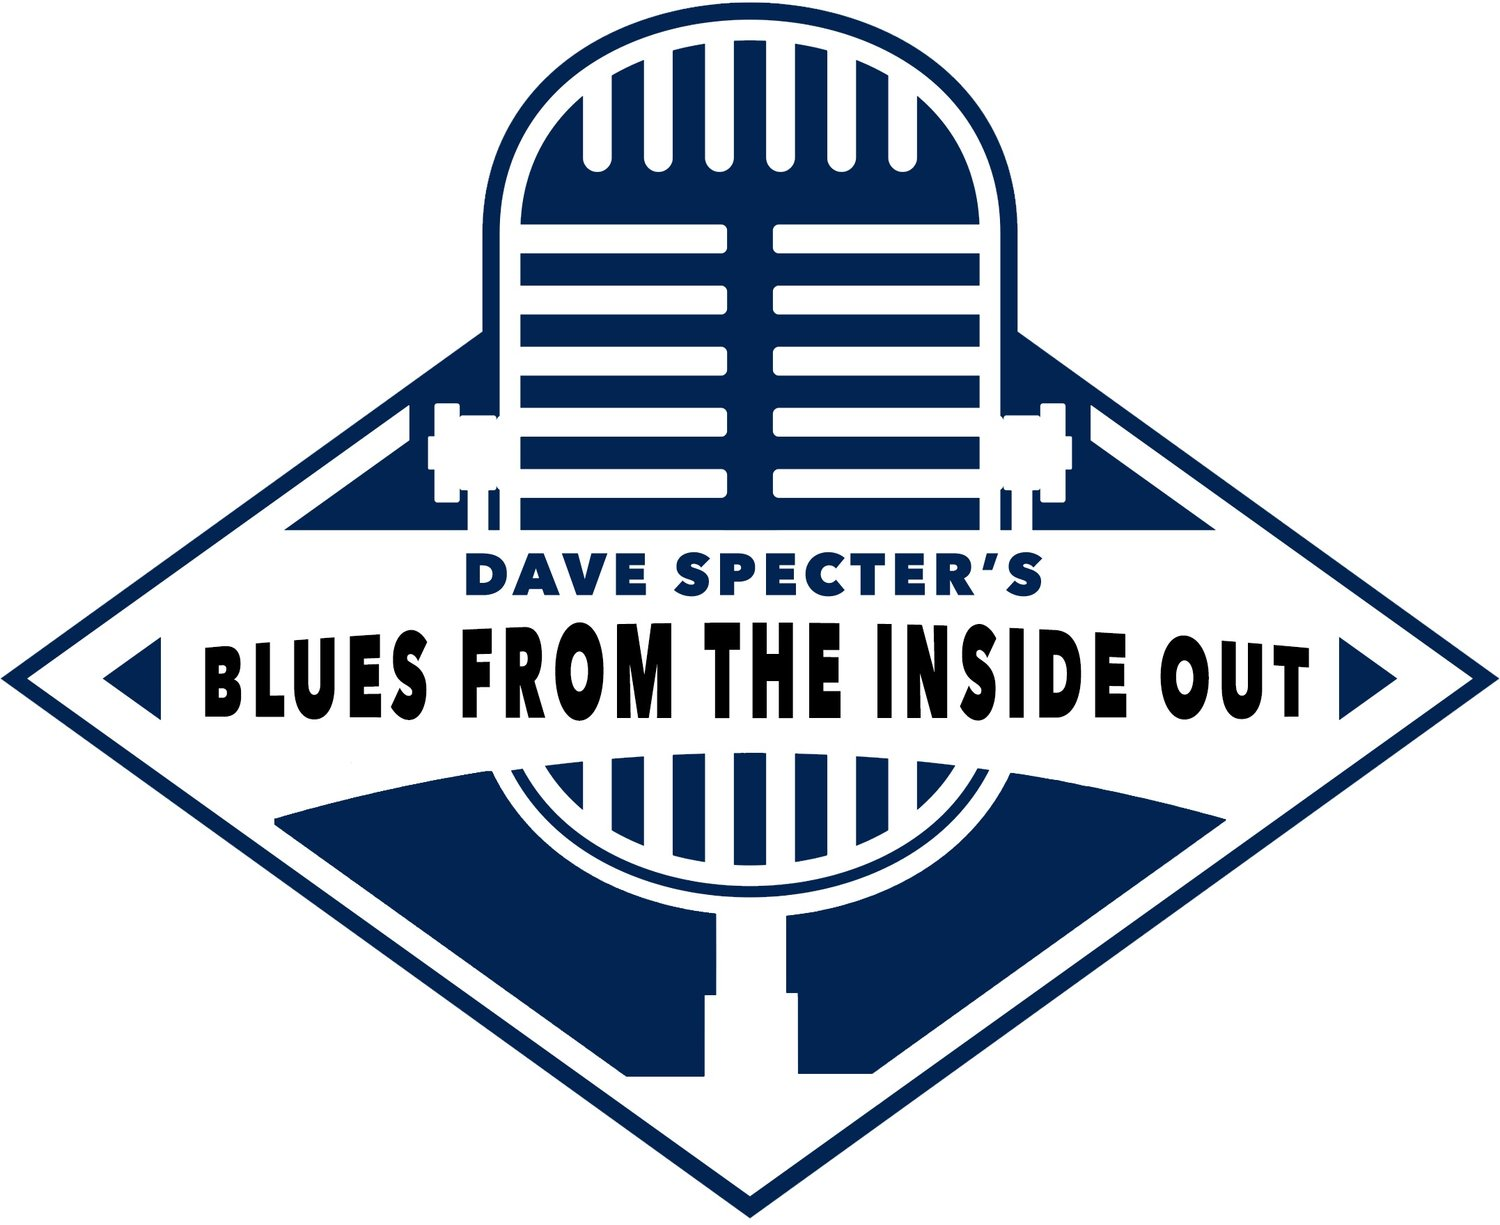 Dave Specter's Blues from the Inside Out